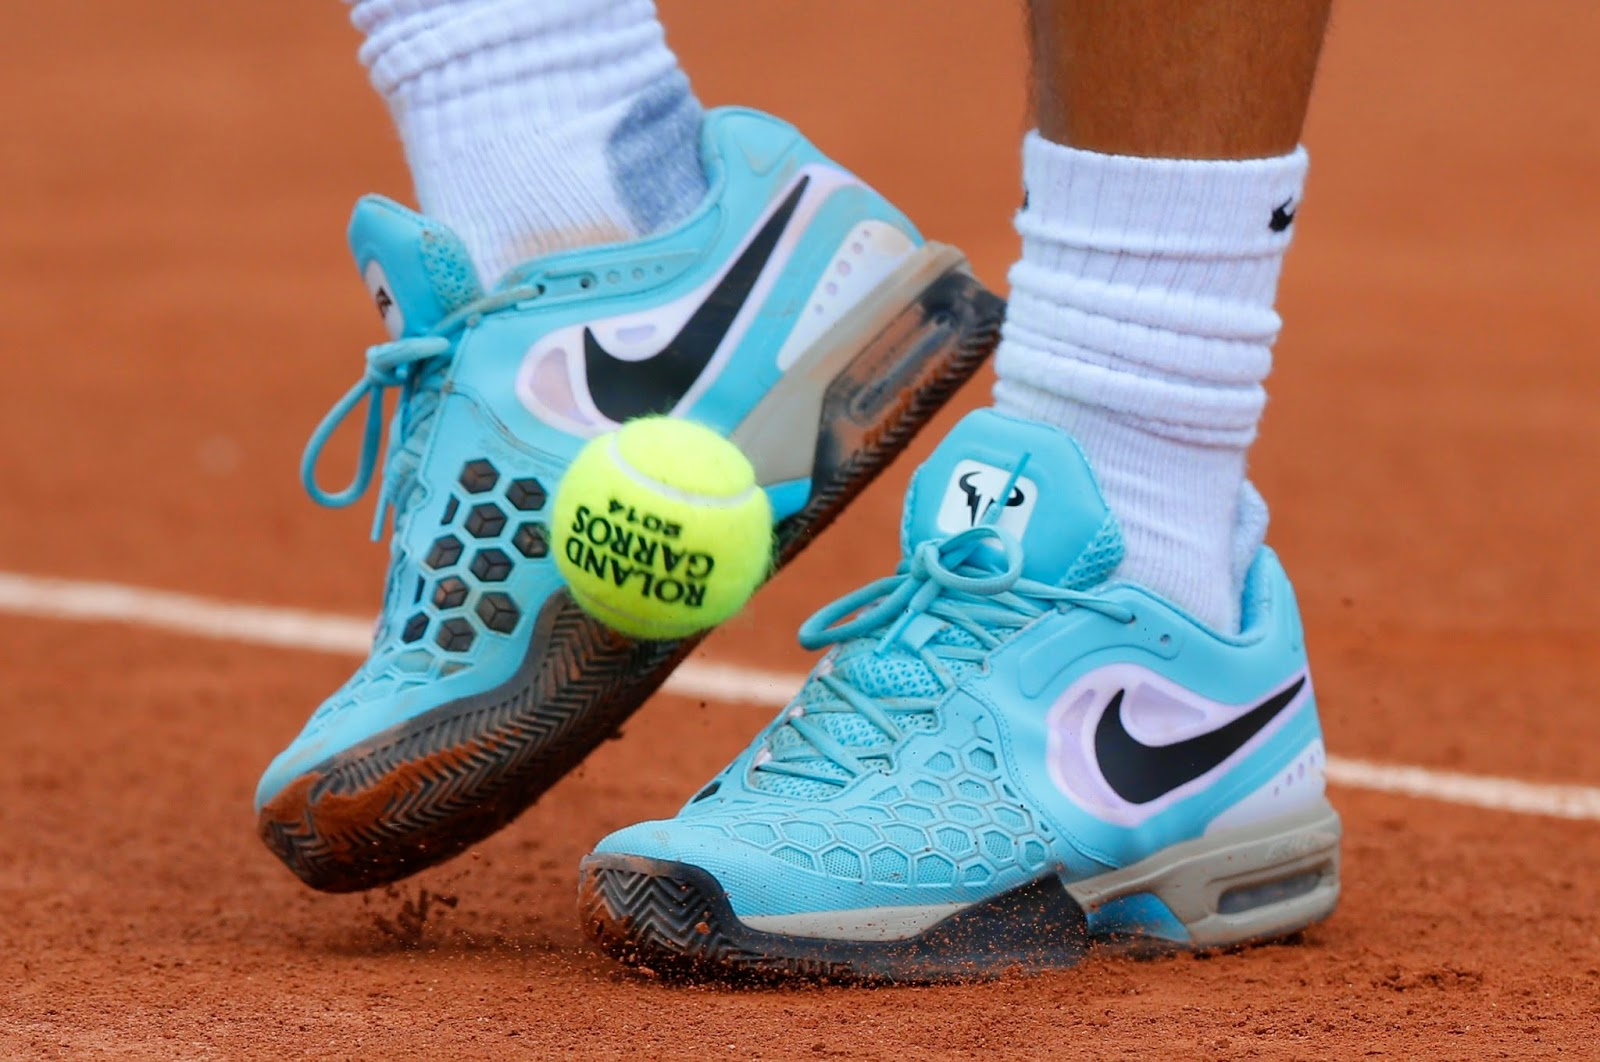 nike shoes of nadal girlfriend occupation 950946